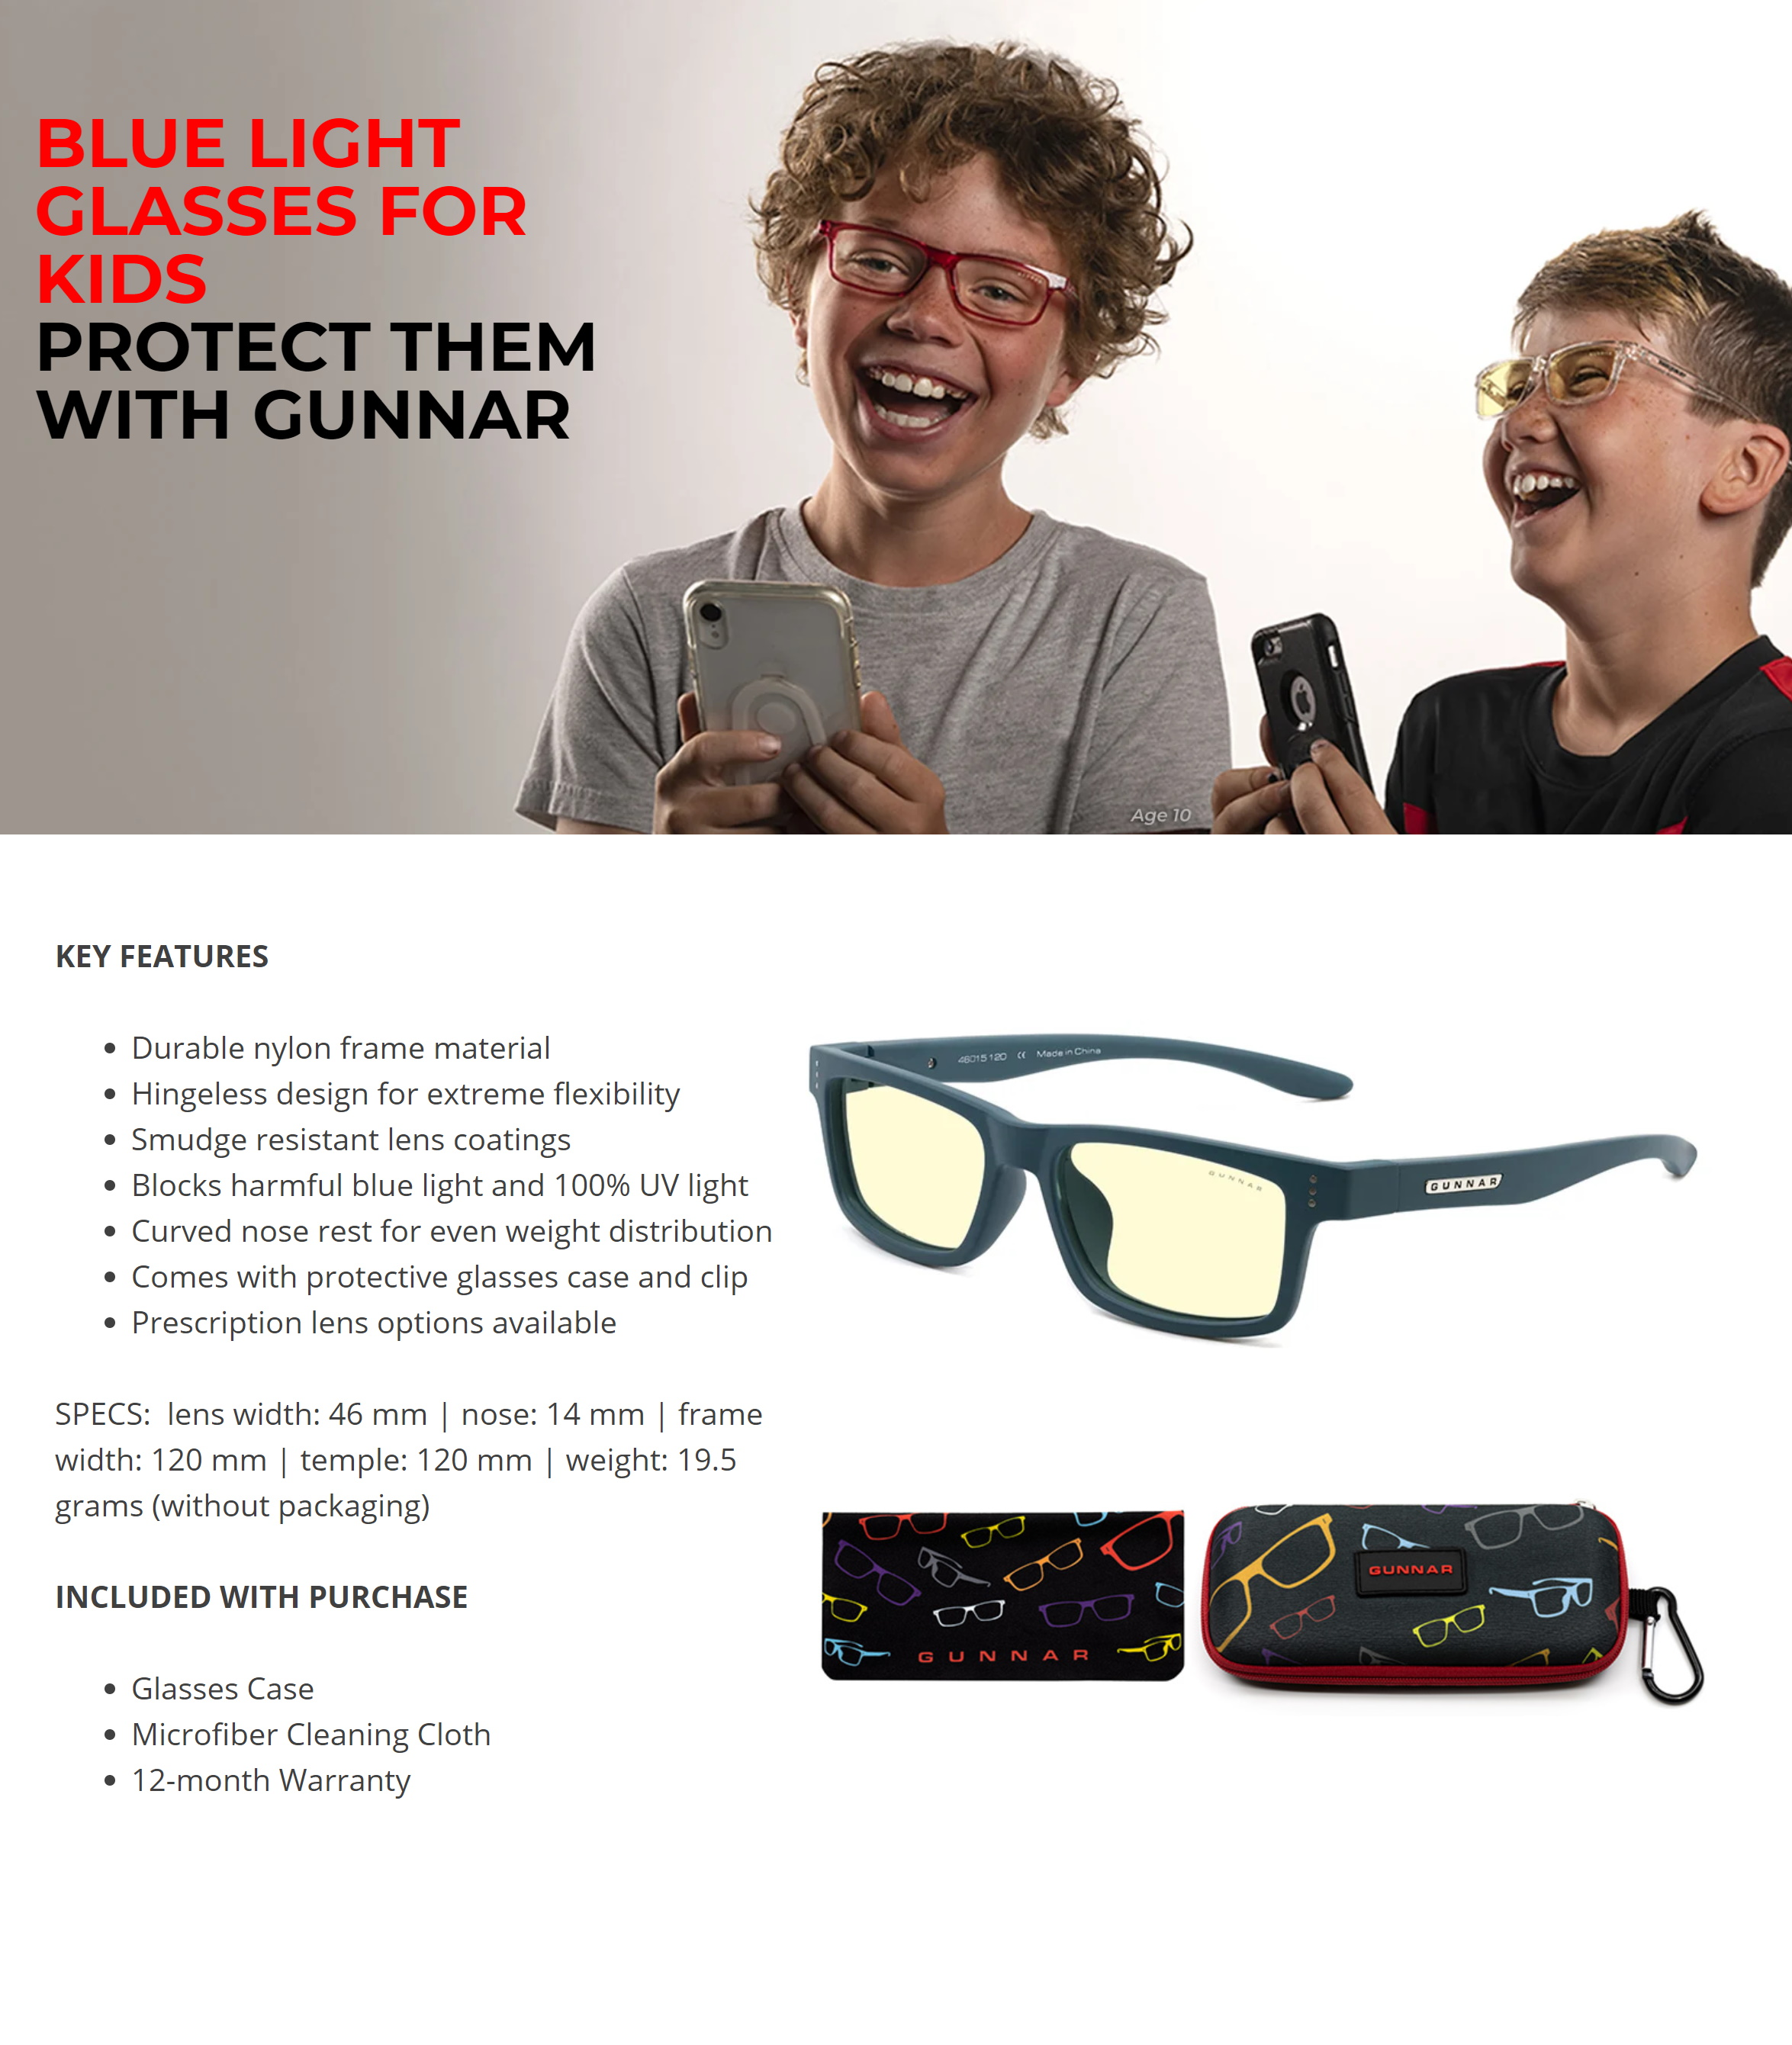 A large marketing image providing additional information about the product Gunnar Cruz Kids Amber Teal Indoor Digital Eyewear Small - Additional alt info not provided